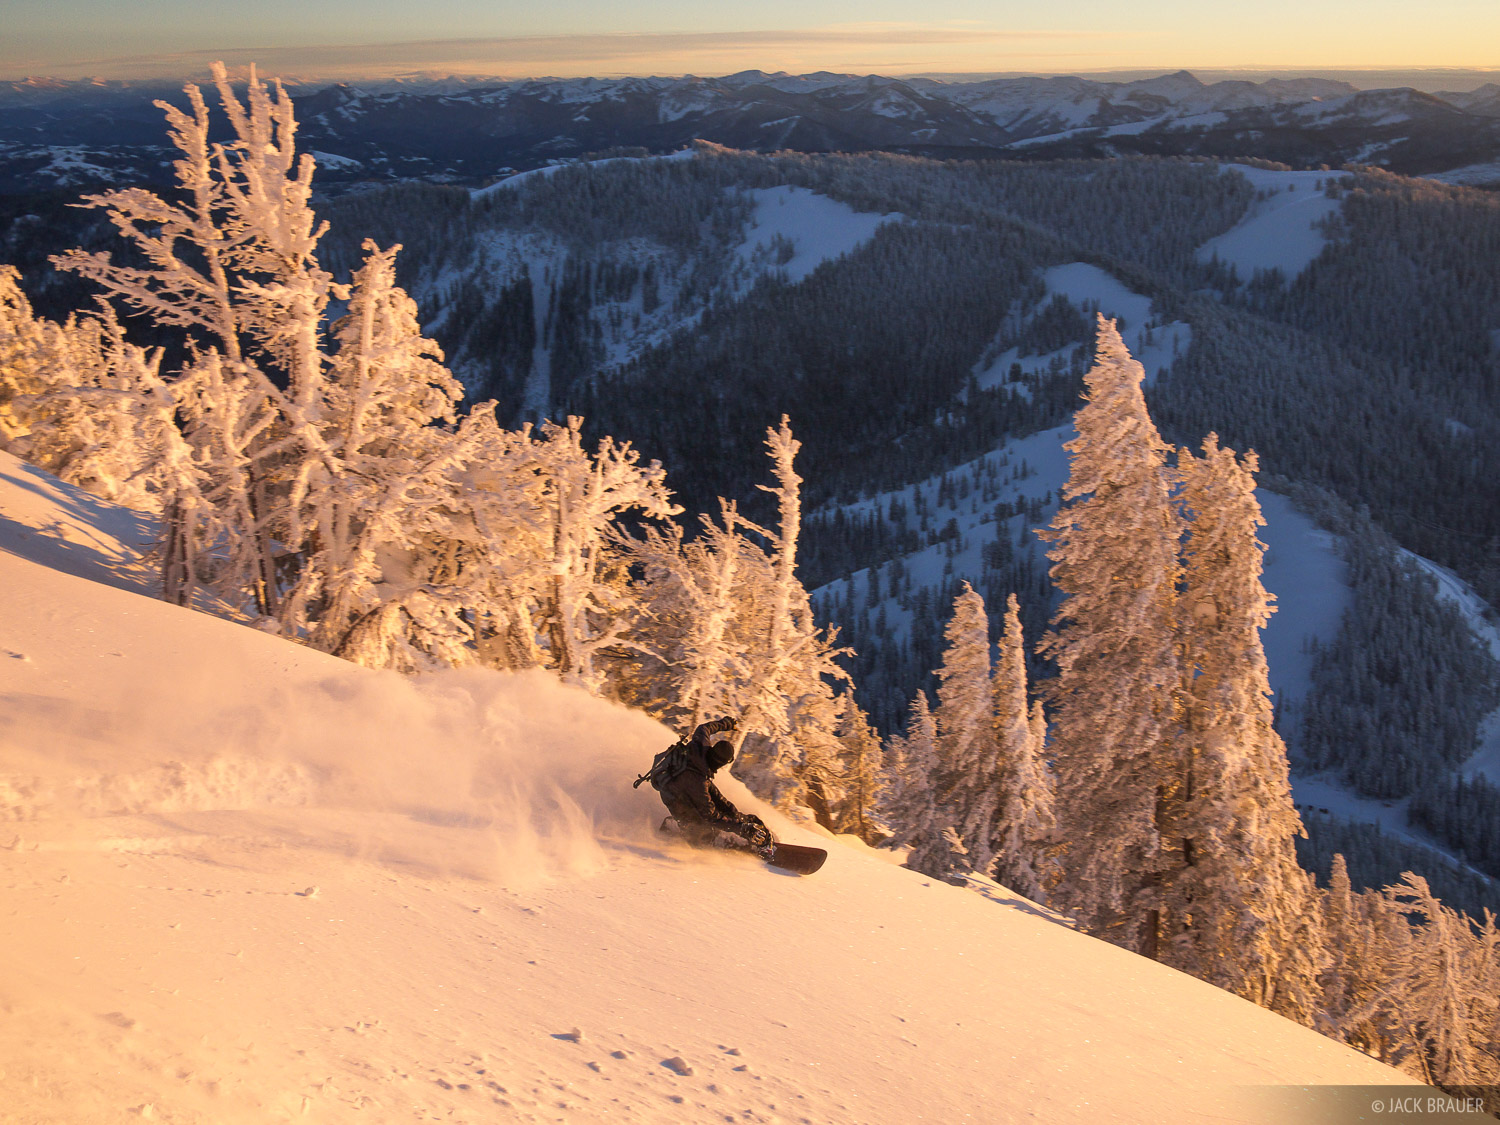 snowboarding, Jackson Hole, Wyoming, Teton Pass, sunset, photo